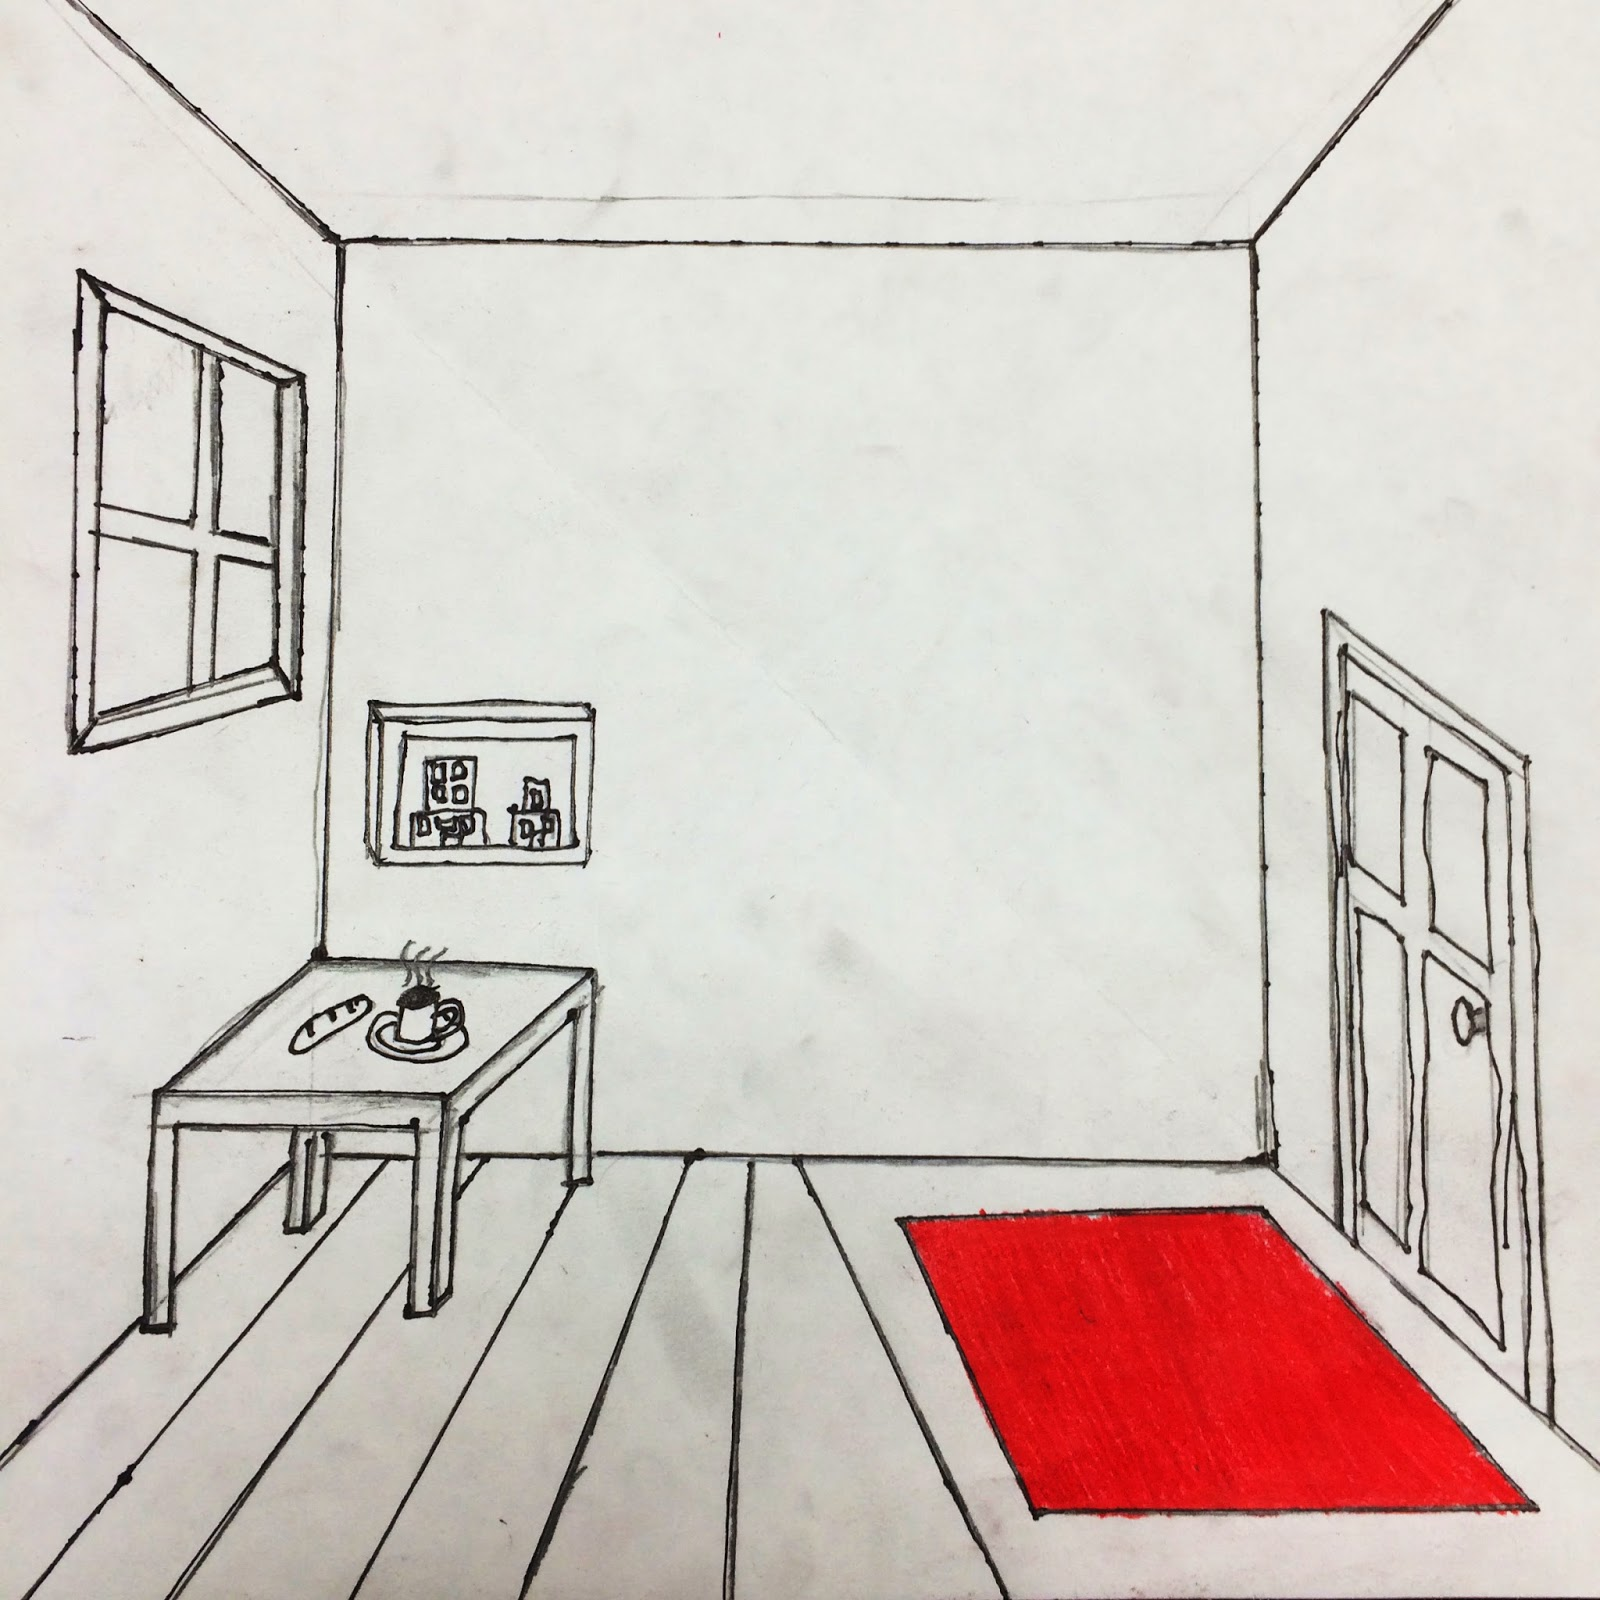 Living Room 2 Point Perspective the helpful art teacher: draw a surrealistic room in one point